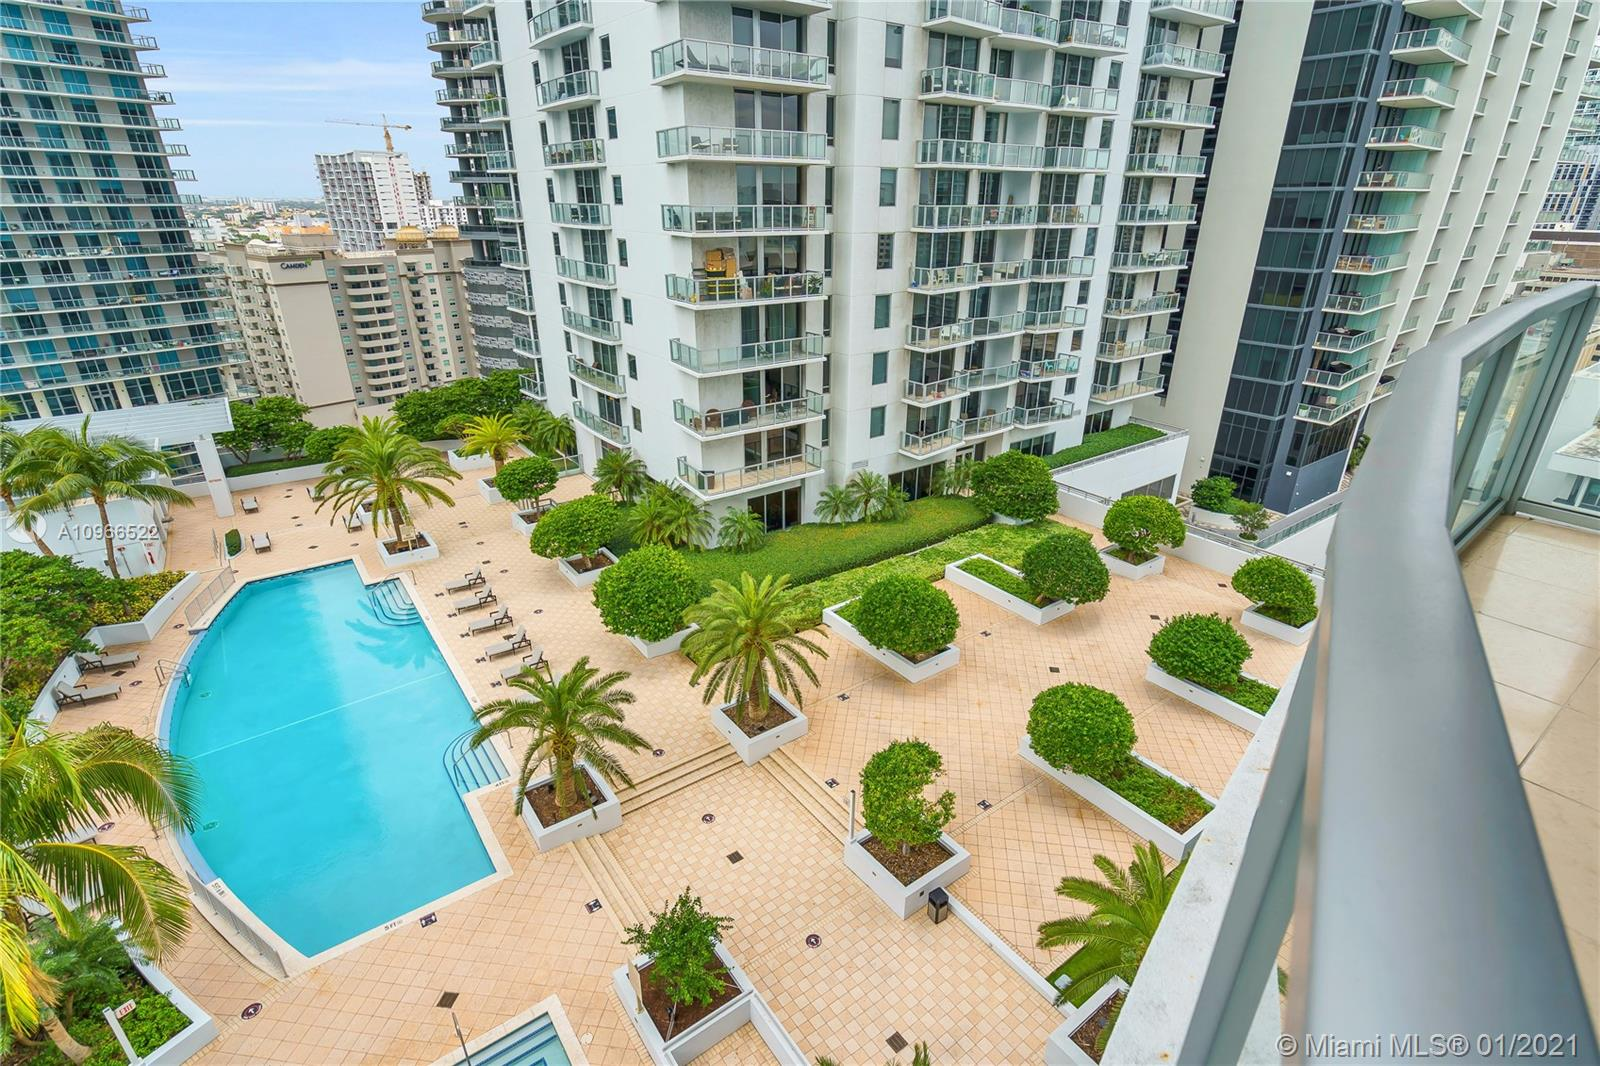 1060 Brickell West Tower #1813 - 1060 Brickell Ave #1813, Miami, FL 33131